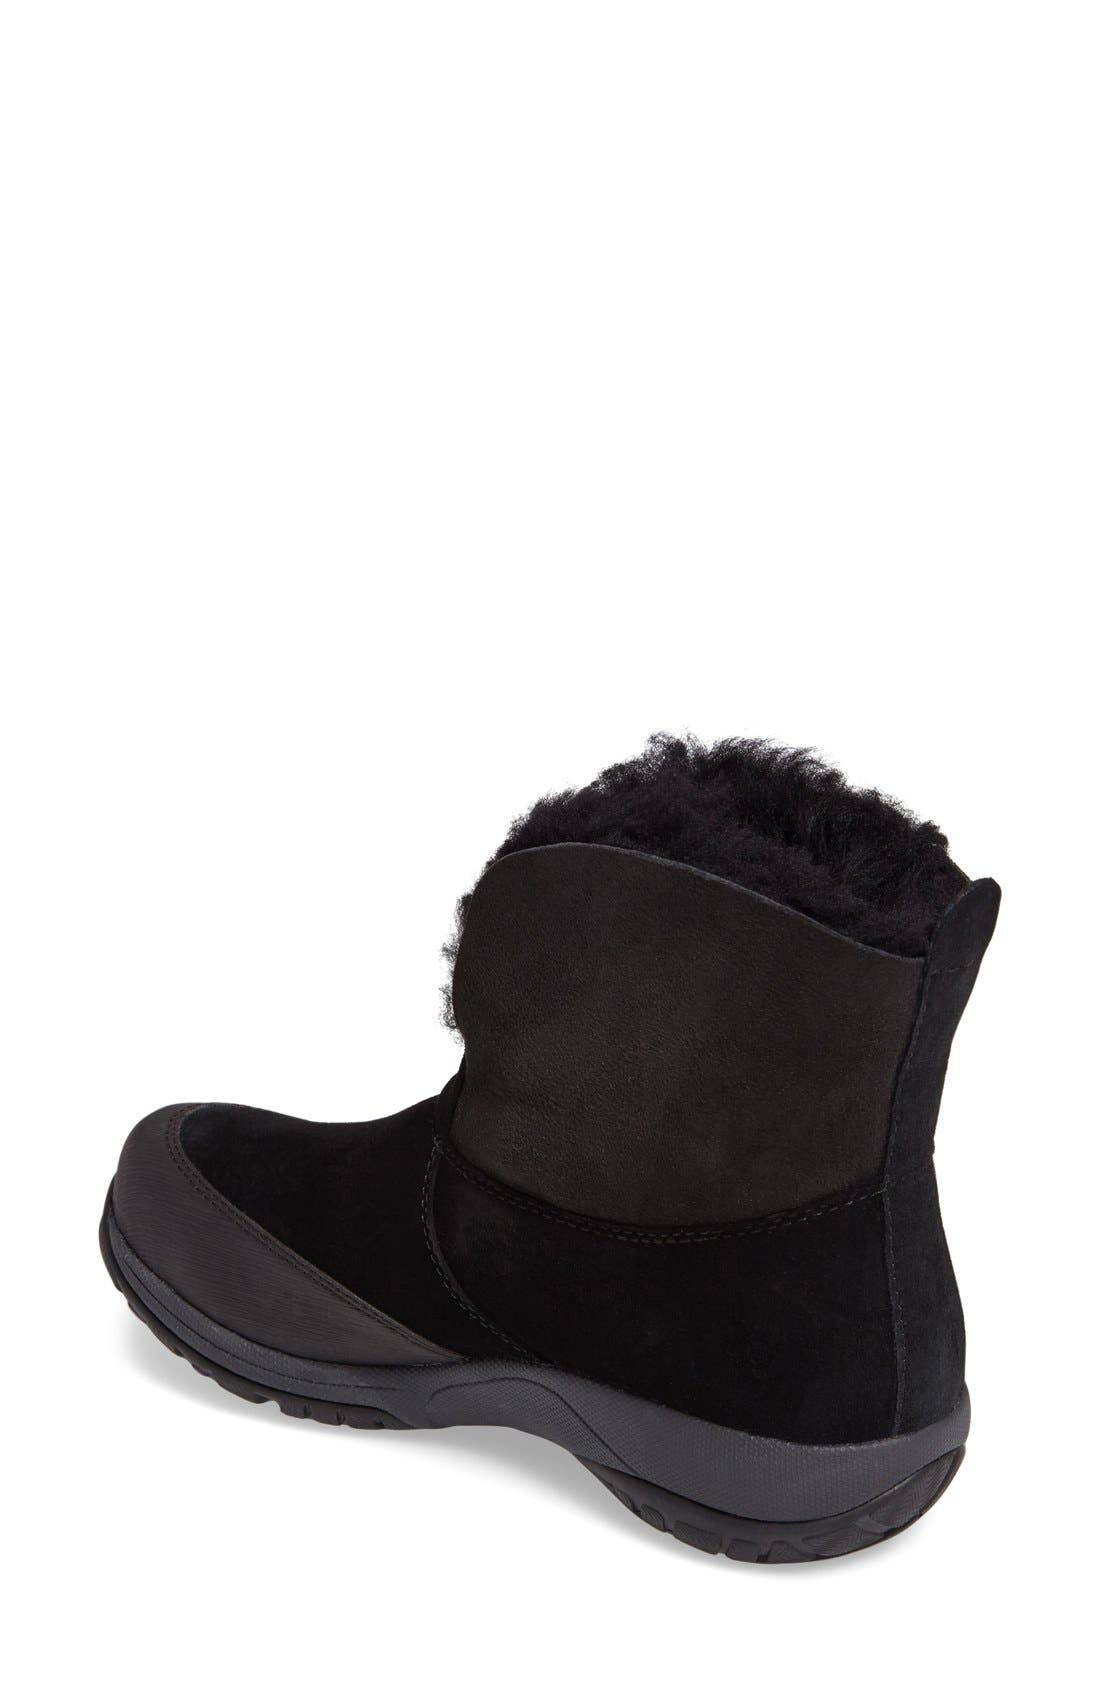 Priscilla Genuine Shearling Waterproof Bootie,                             Alternate thumbnail 2, color,                             Black Suede